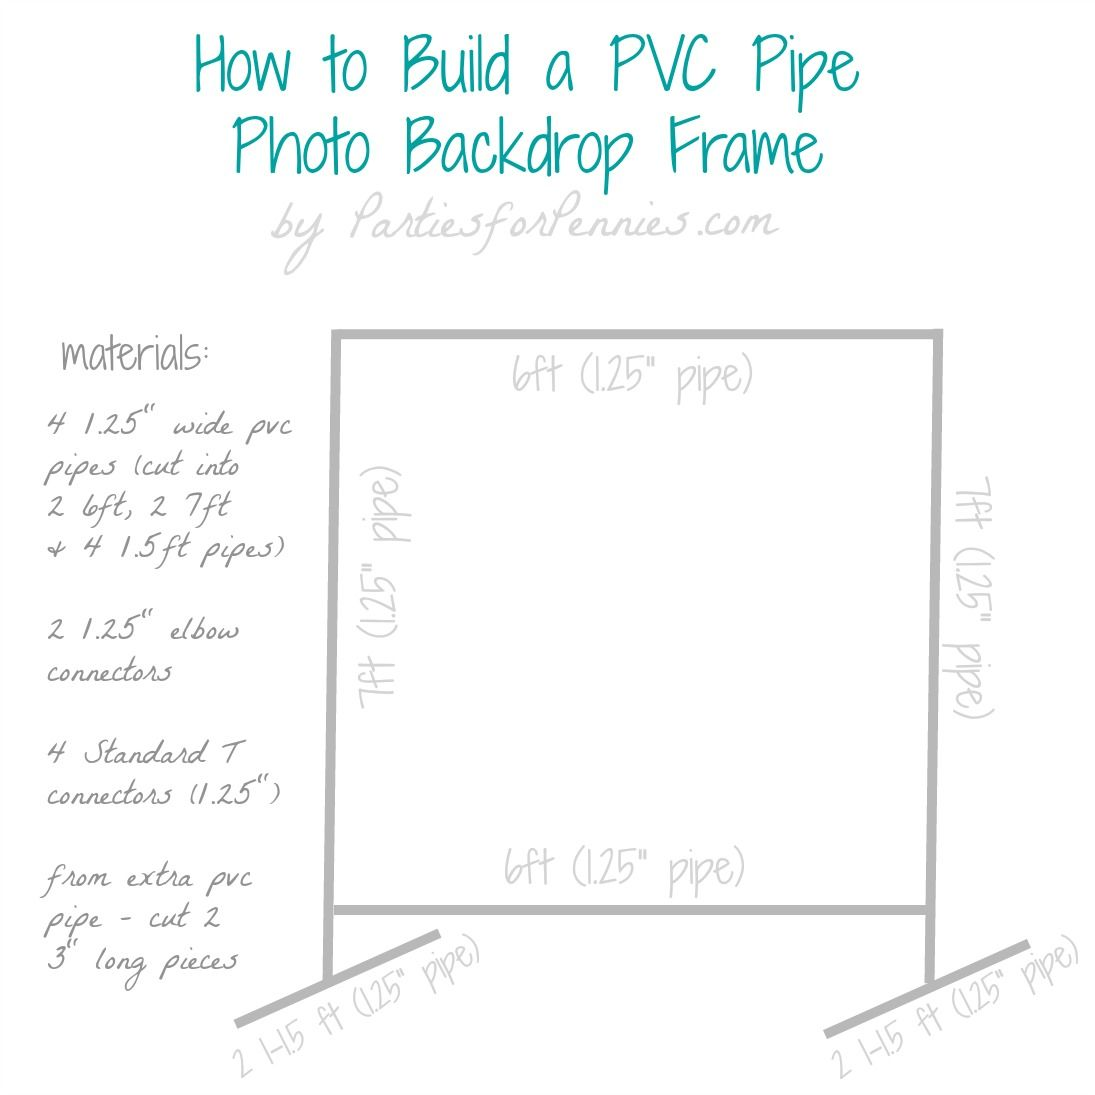 diy photo backdrop frame with pvc pipe by partiesforpenniescom